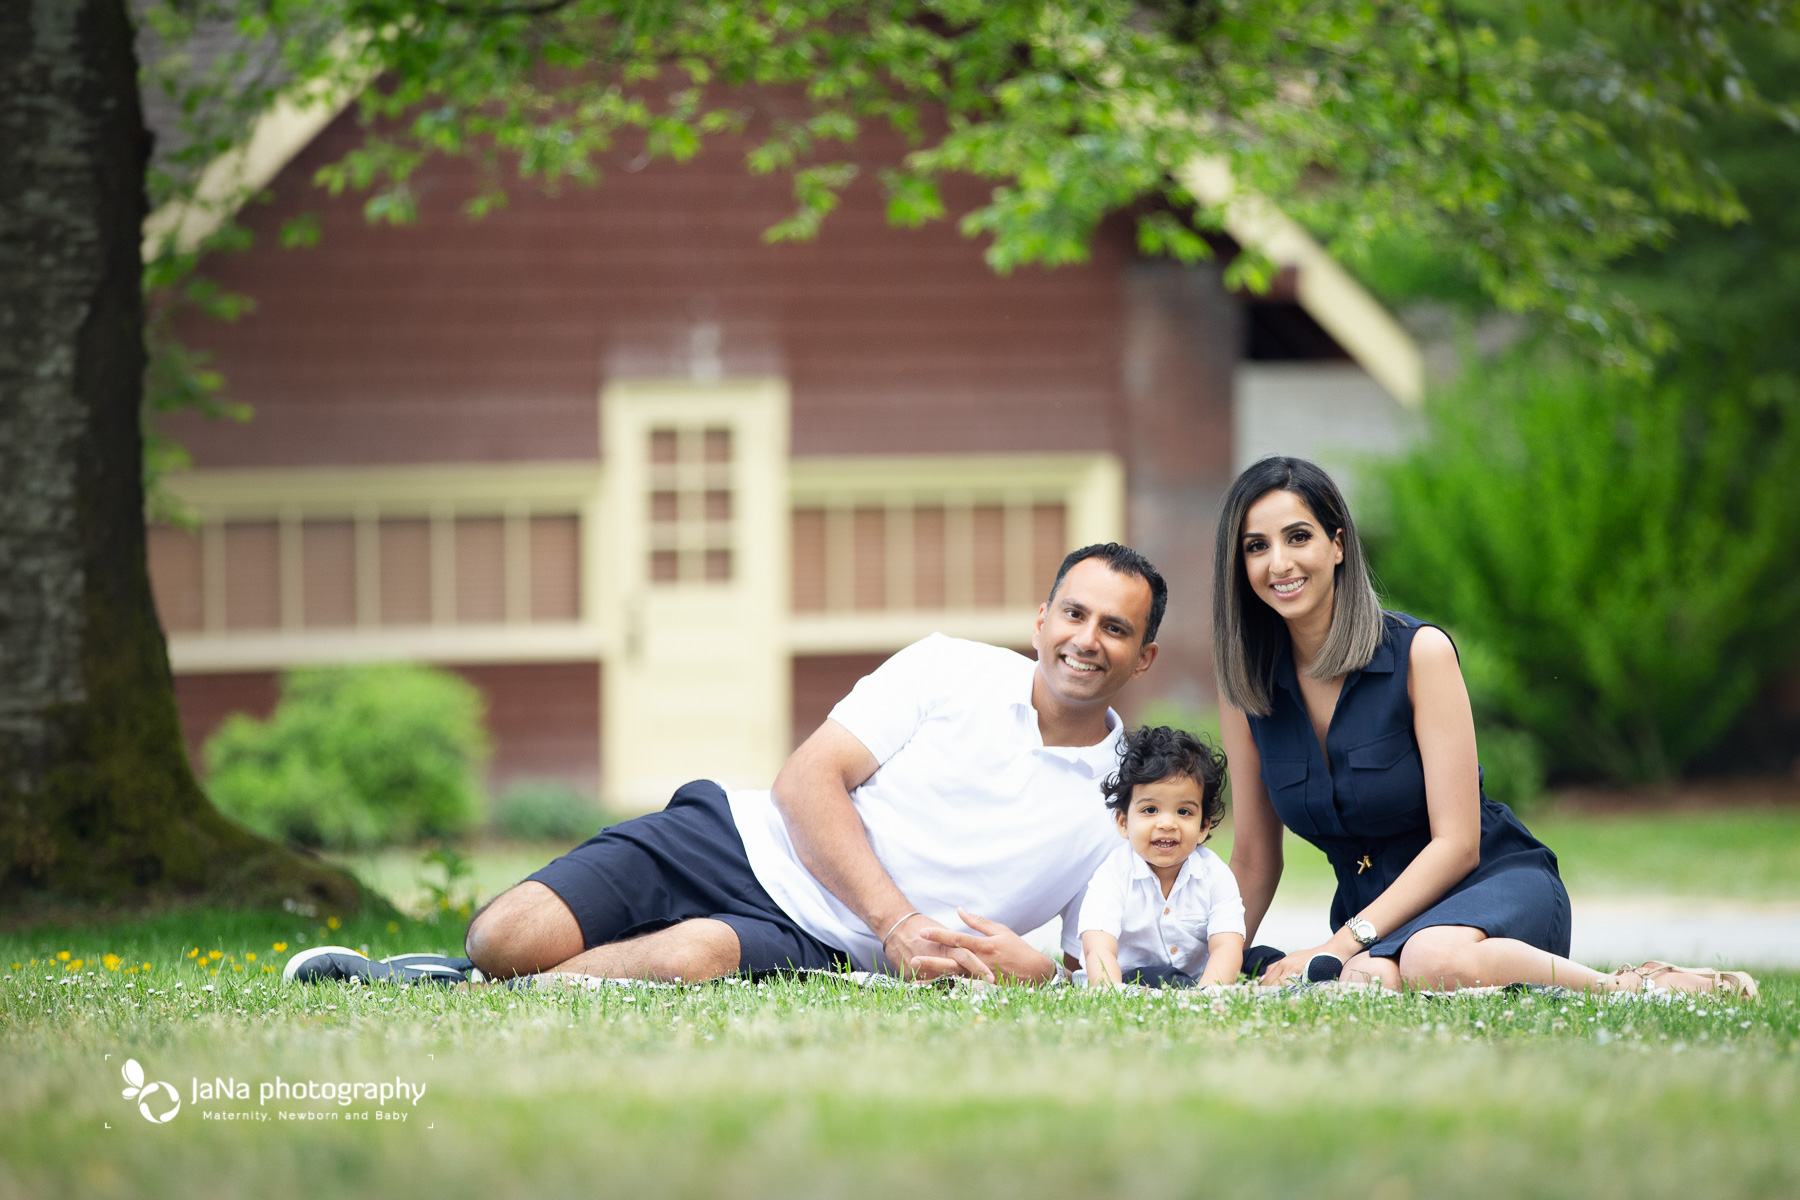 Vancouver outdoor family photography - casual